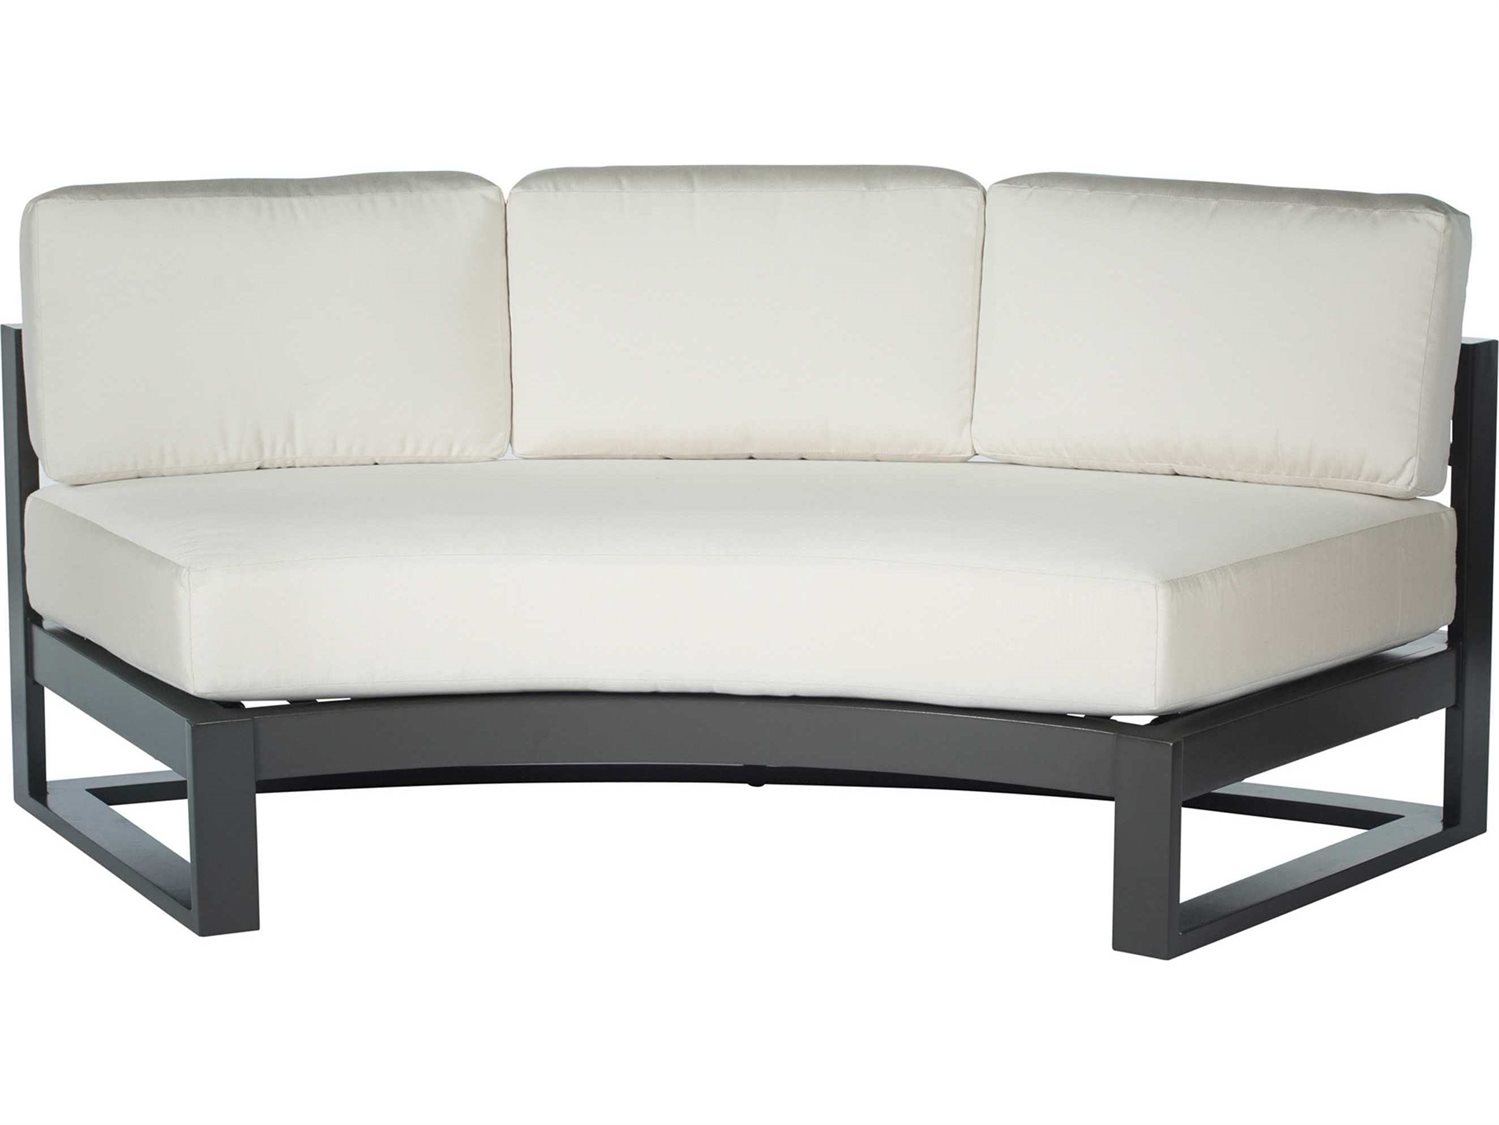 Ebel Palermo Aluminum Fire Pit Sectional Lounge Set